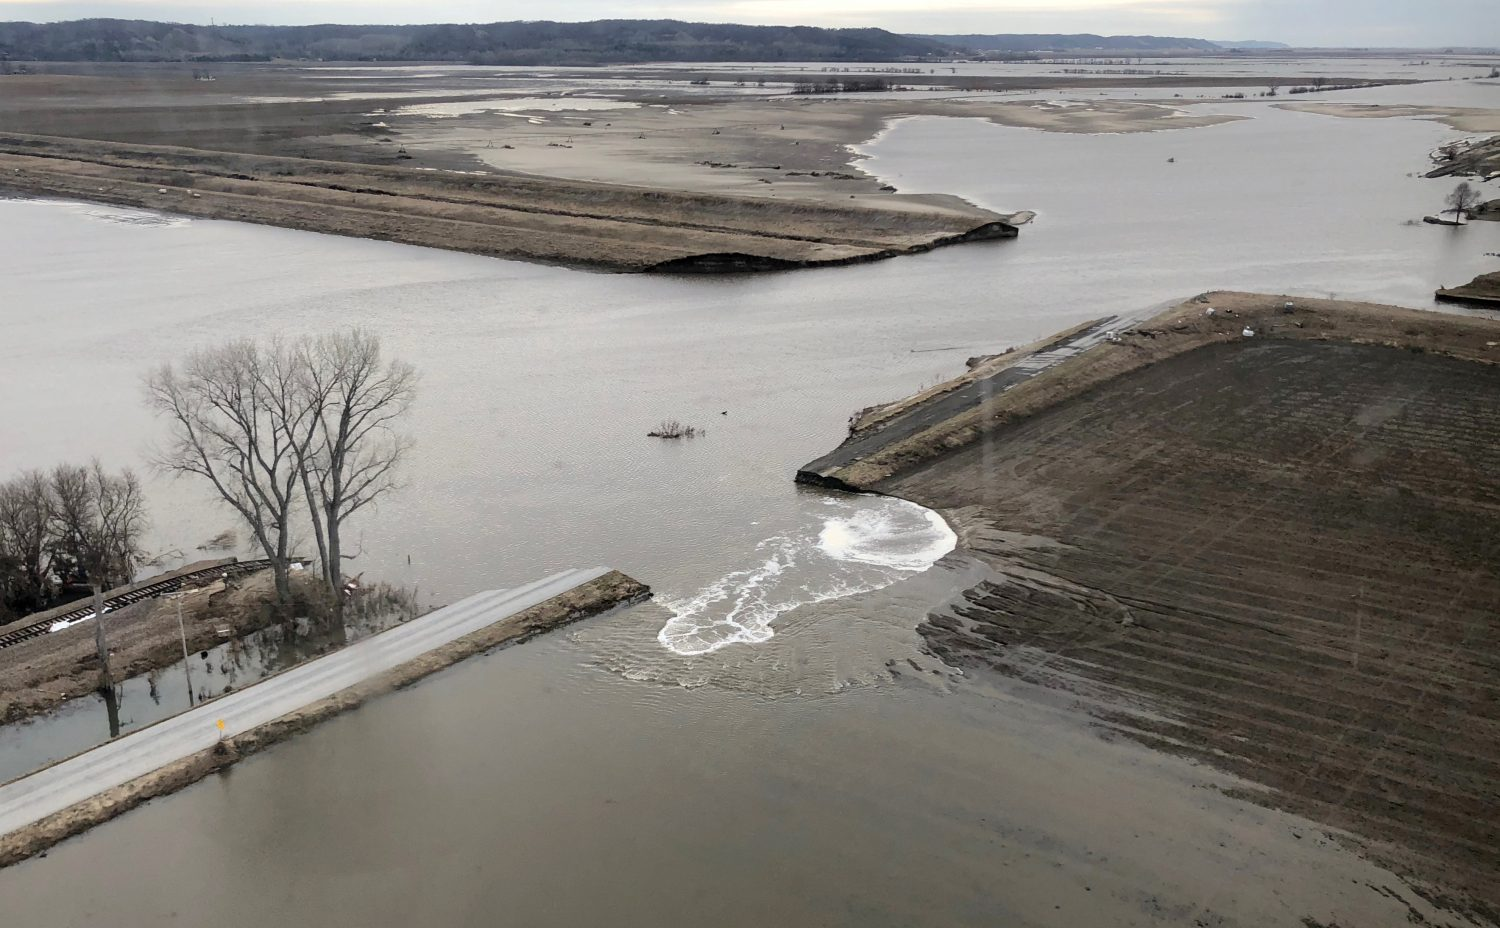 FILE PHOTO: A levee breach is shown in this aerial photo, from flood damage near Bartlett, Iowa, U.S., March 29, 2019. REUTERS/Tom Polansek/File Photo